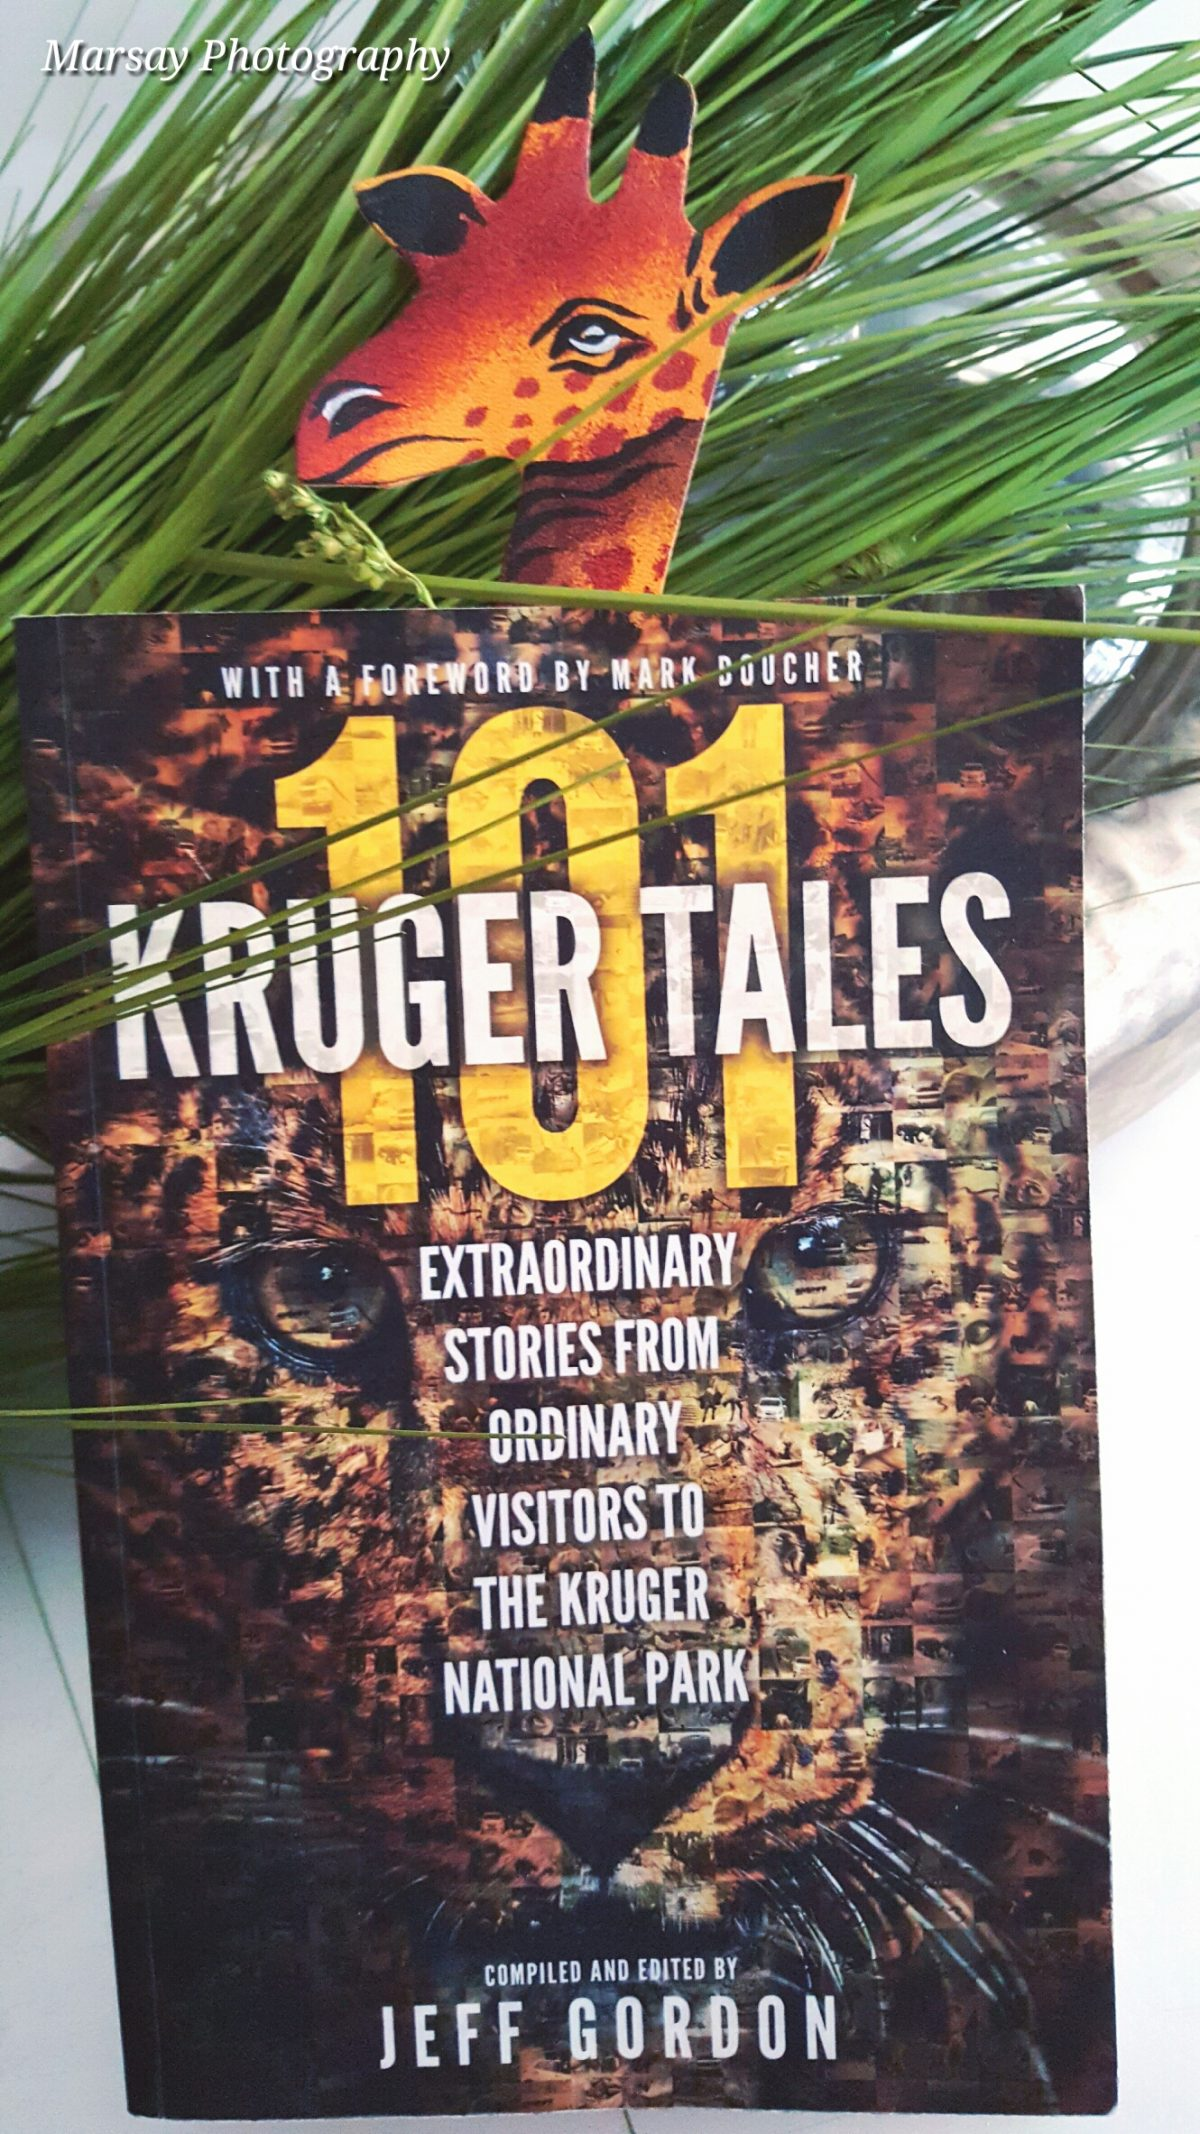 101 Kruger Tales: Book review